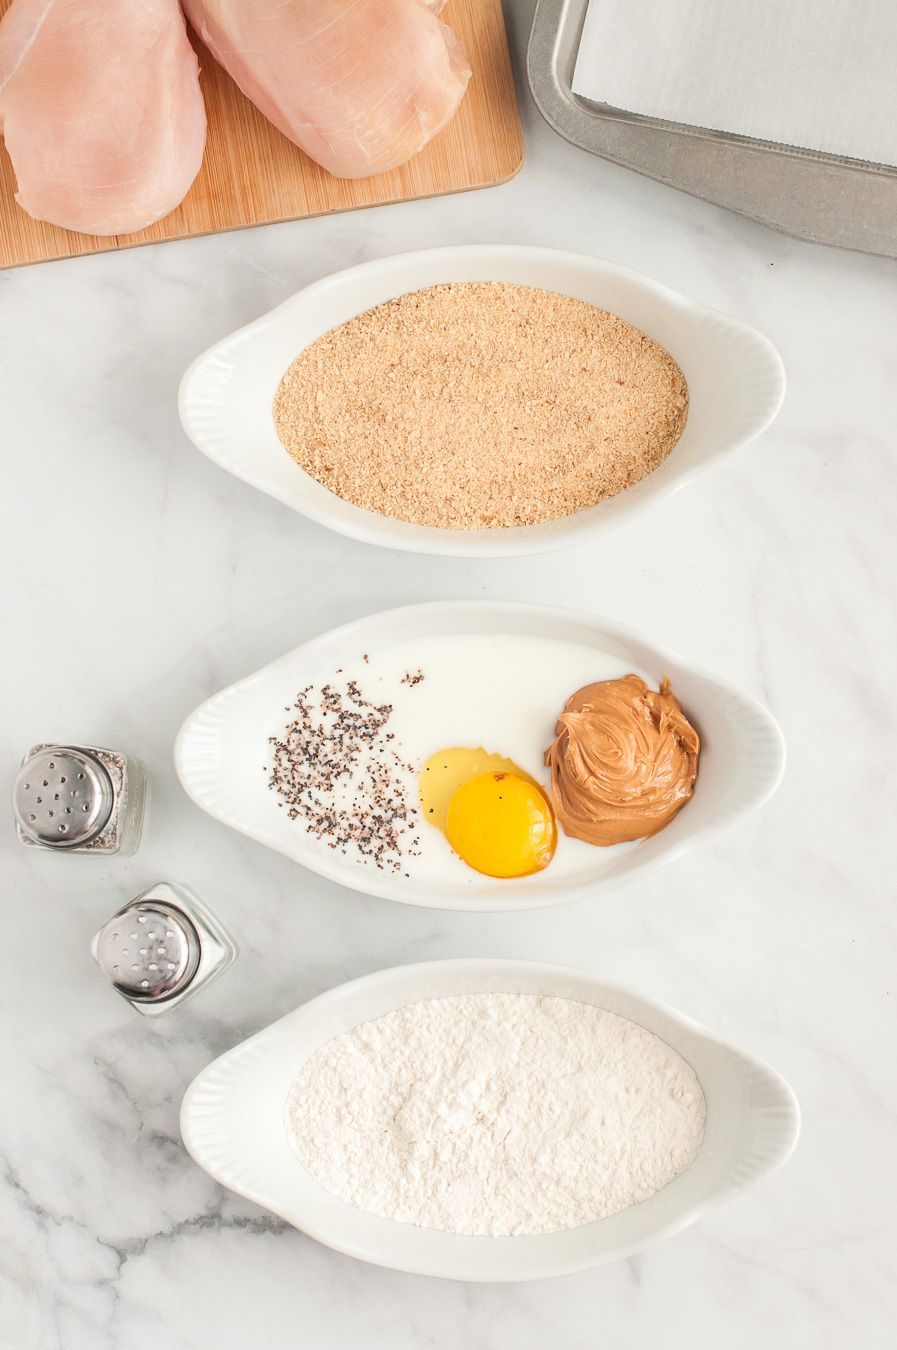 3 bowls for mixing, breadcrumbs and milk mixture.